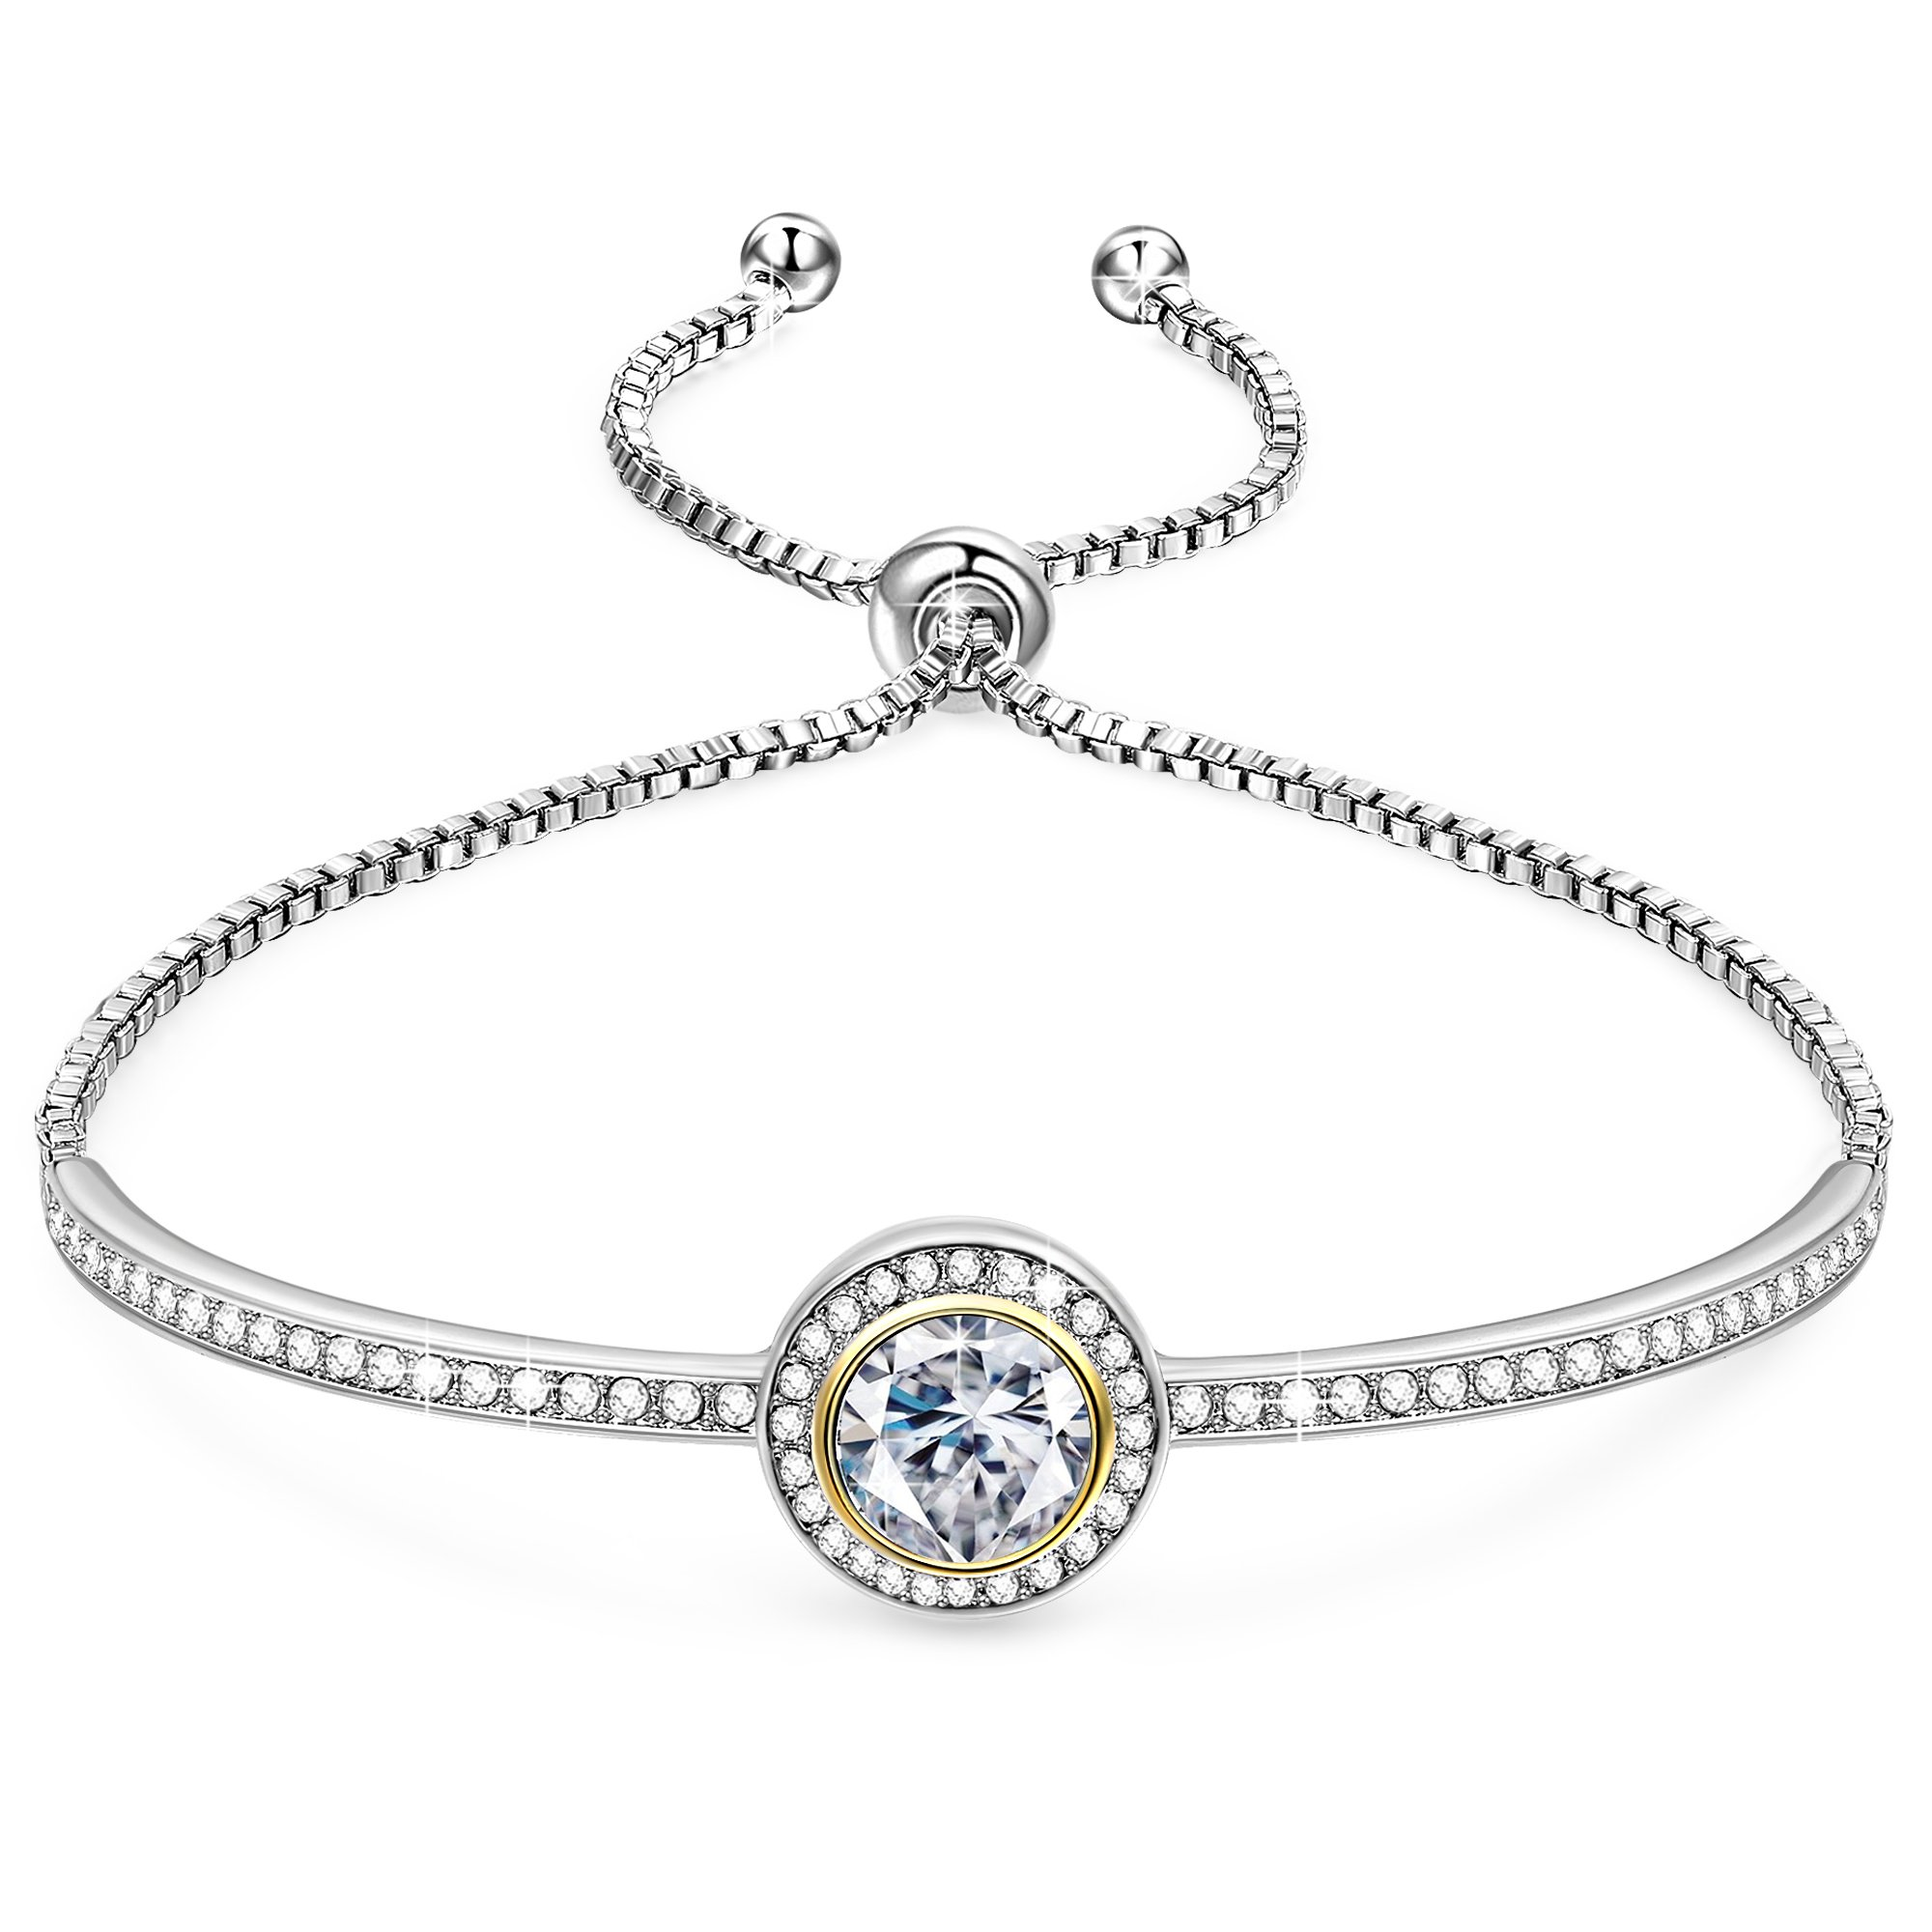 "GEORGE · SMITH Birthday Gifts""Endless Saturn""Classic Design Adjustable Women Bangle Bracelet Crystals from Swarovski Jewelry for Women -a Luxury Gift Box Included"